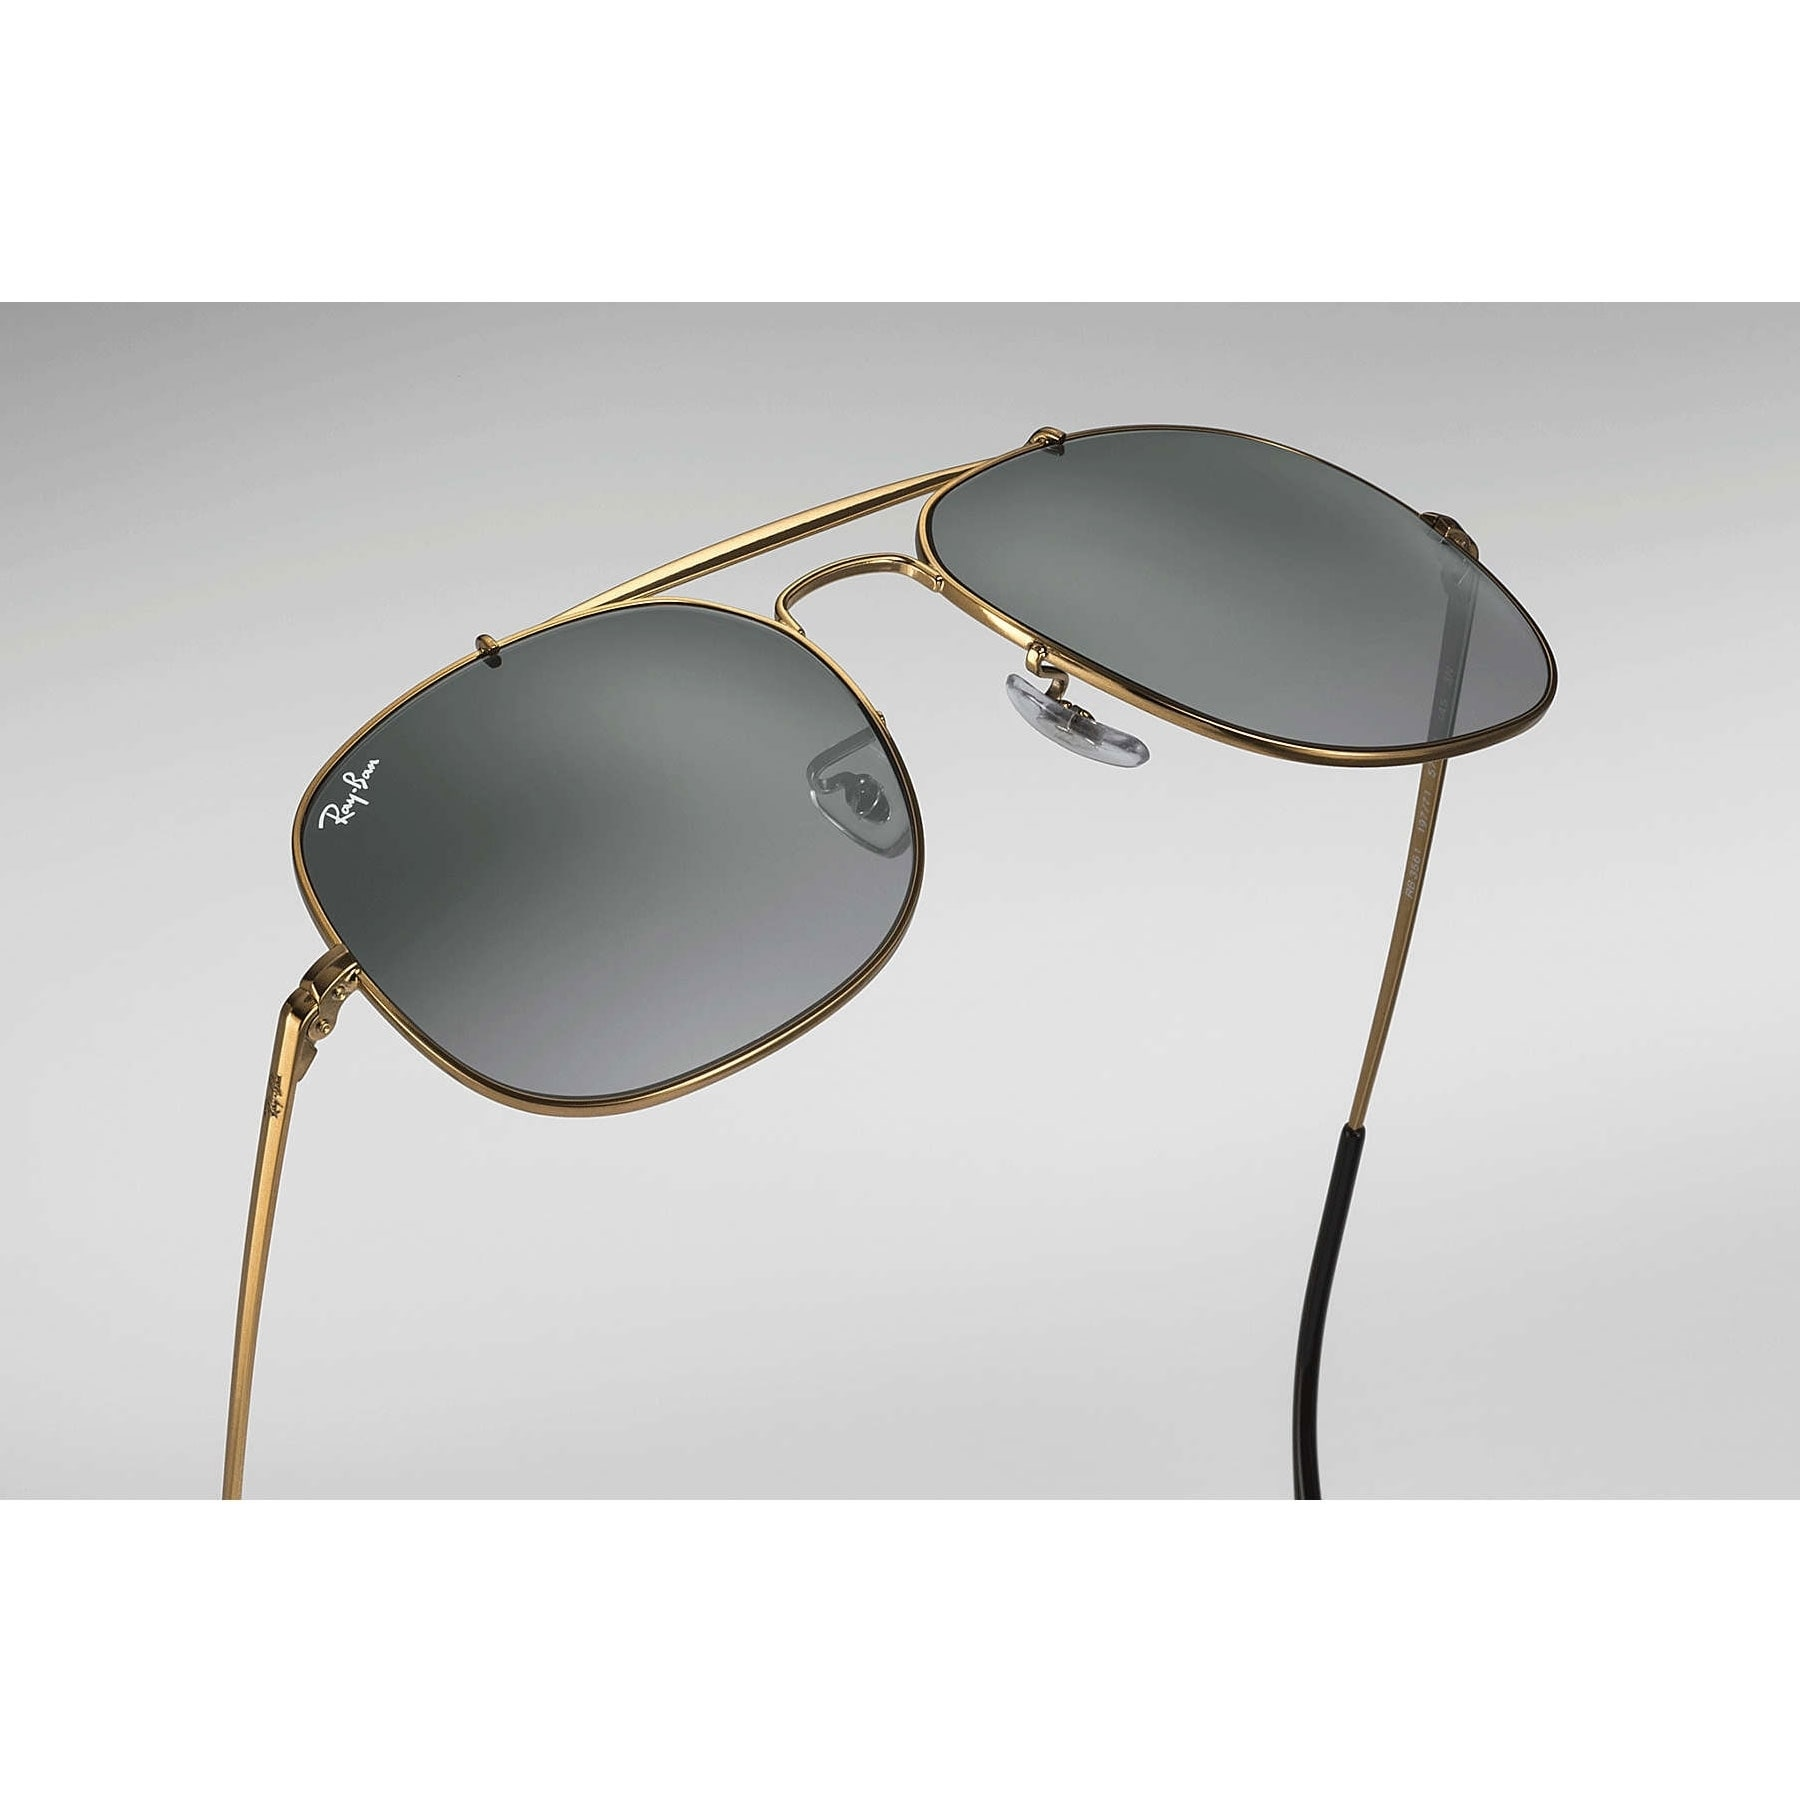 a01a4a38d7 Shop Ray-Ban RB3561 General Sunglasses Bronze   Copper  Grey Gradient 57mm  - Free Shipping Today - Overstock - 20600890